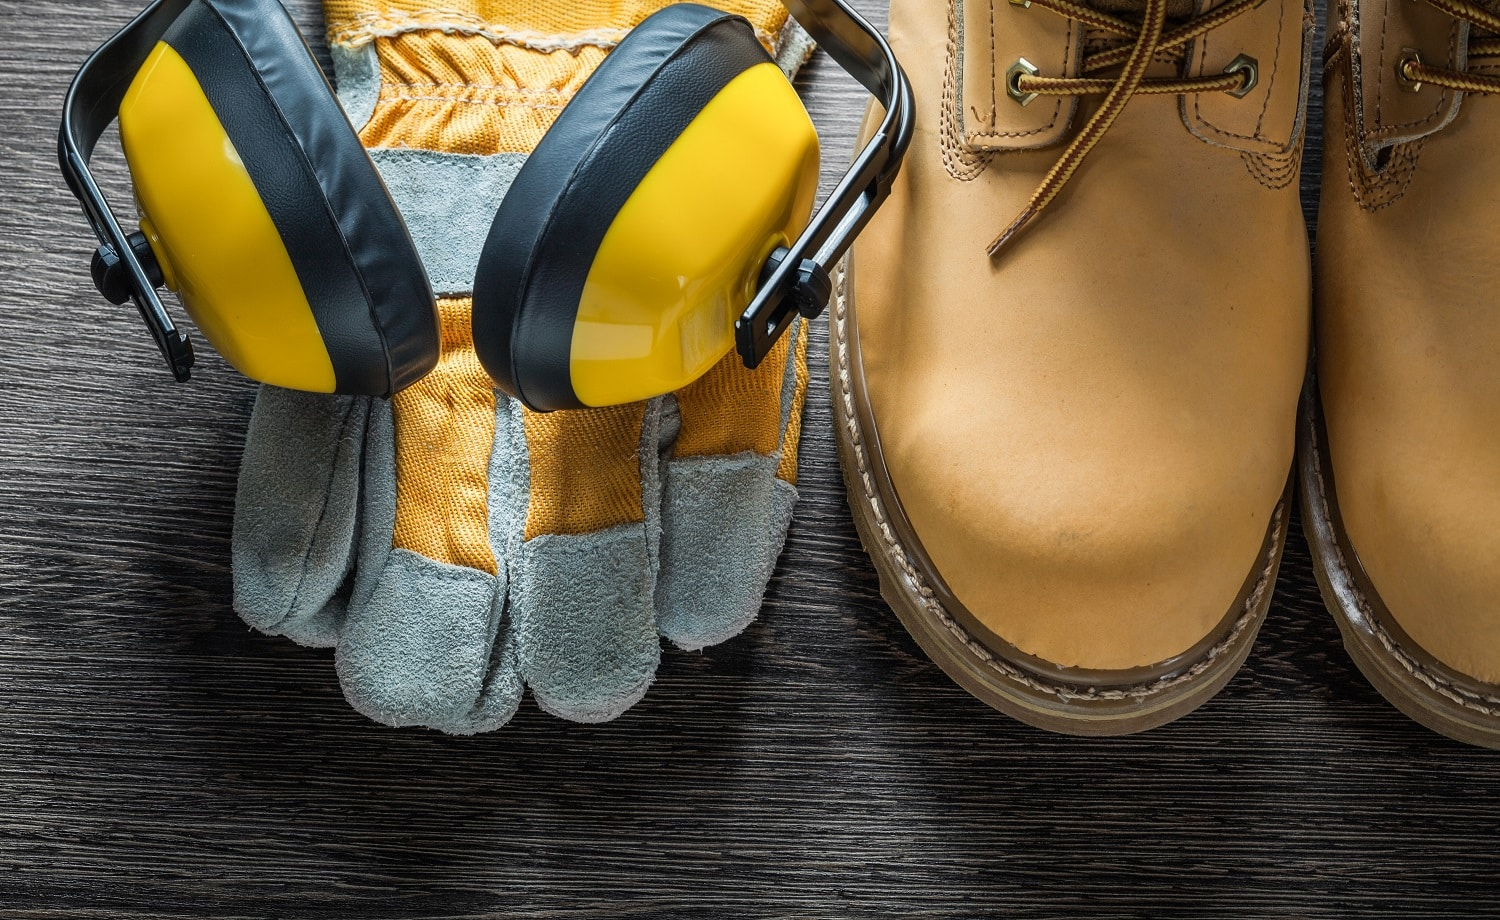 Protective gloves working lace boots ear muffs on wooden board.